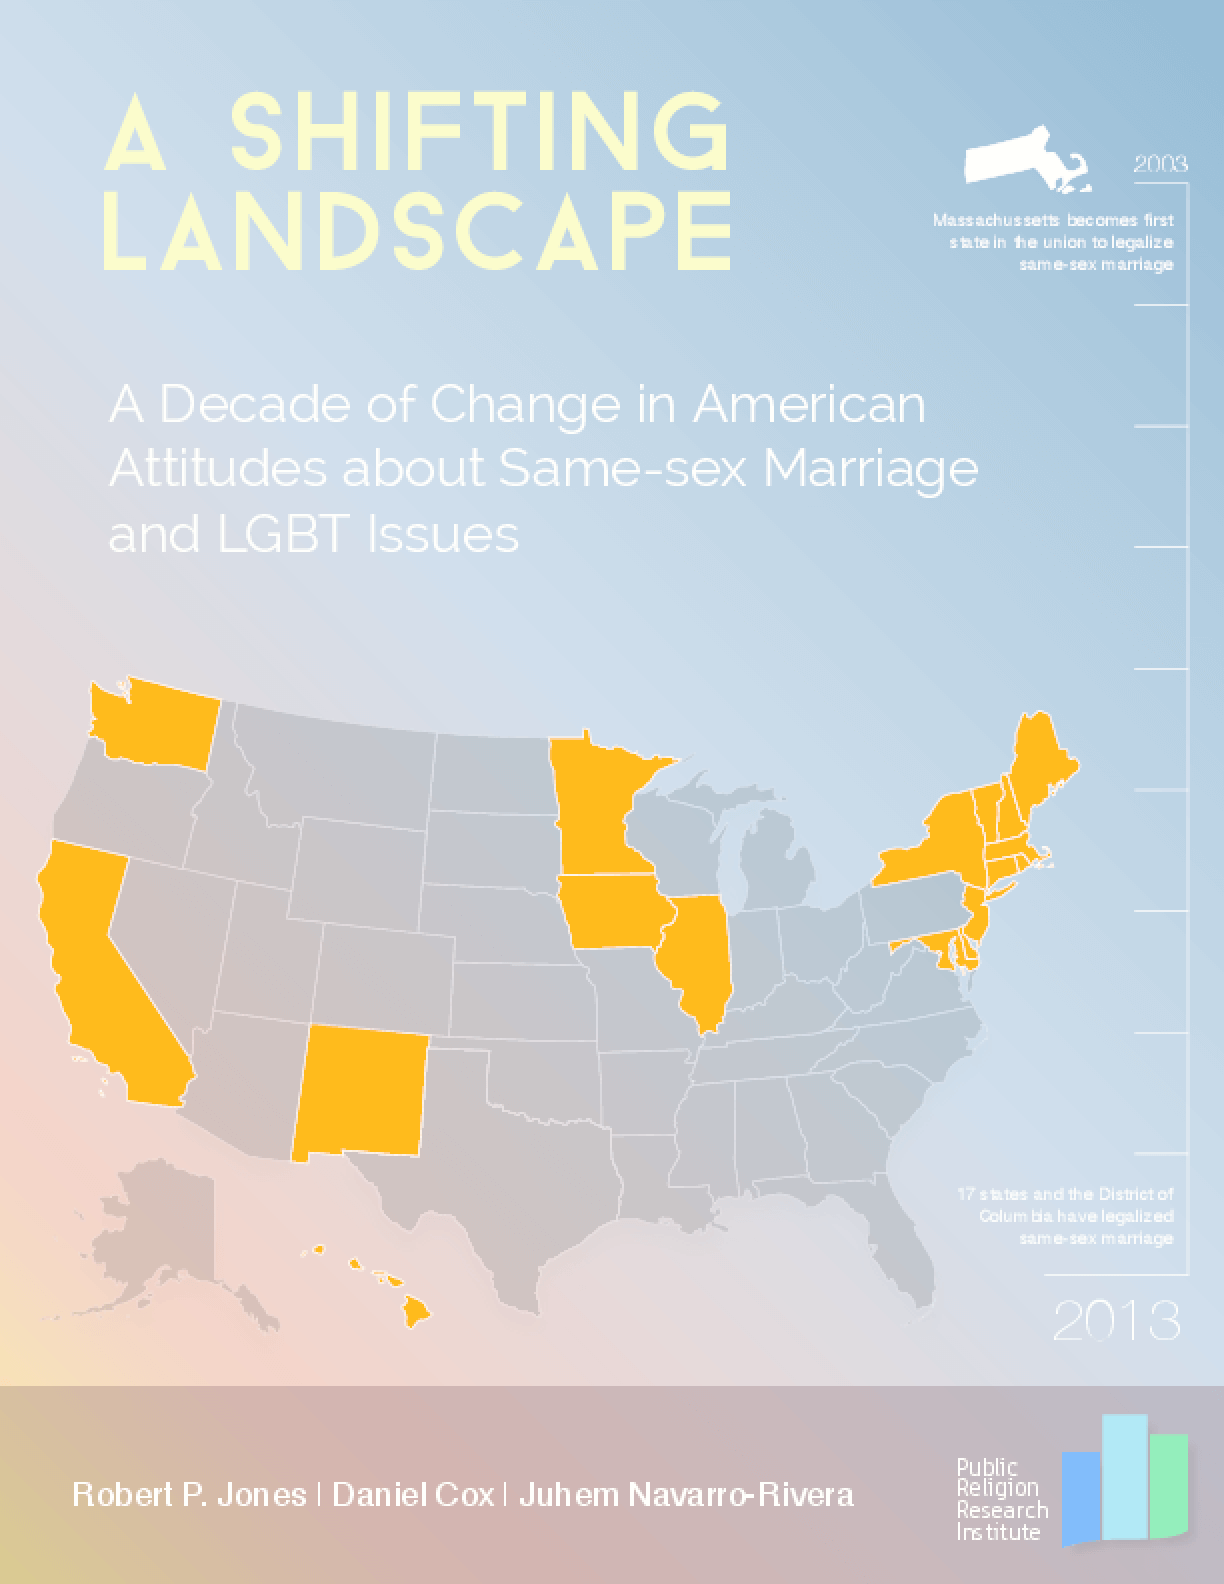 A Shifting Landscape: A Decade of Change in American Attitudes about Same-Sex Marriage and LGBT Issues